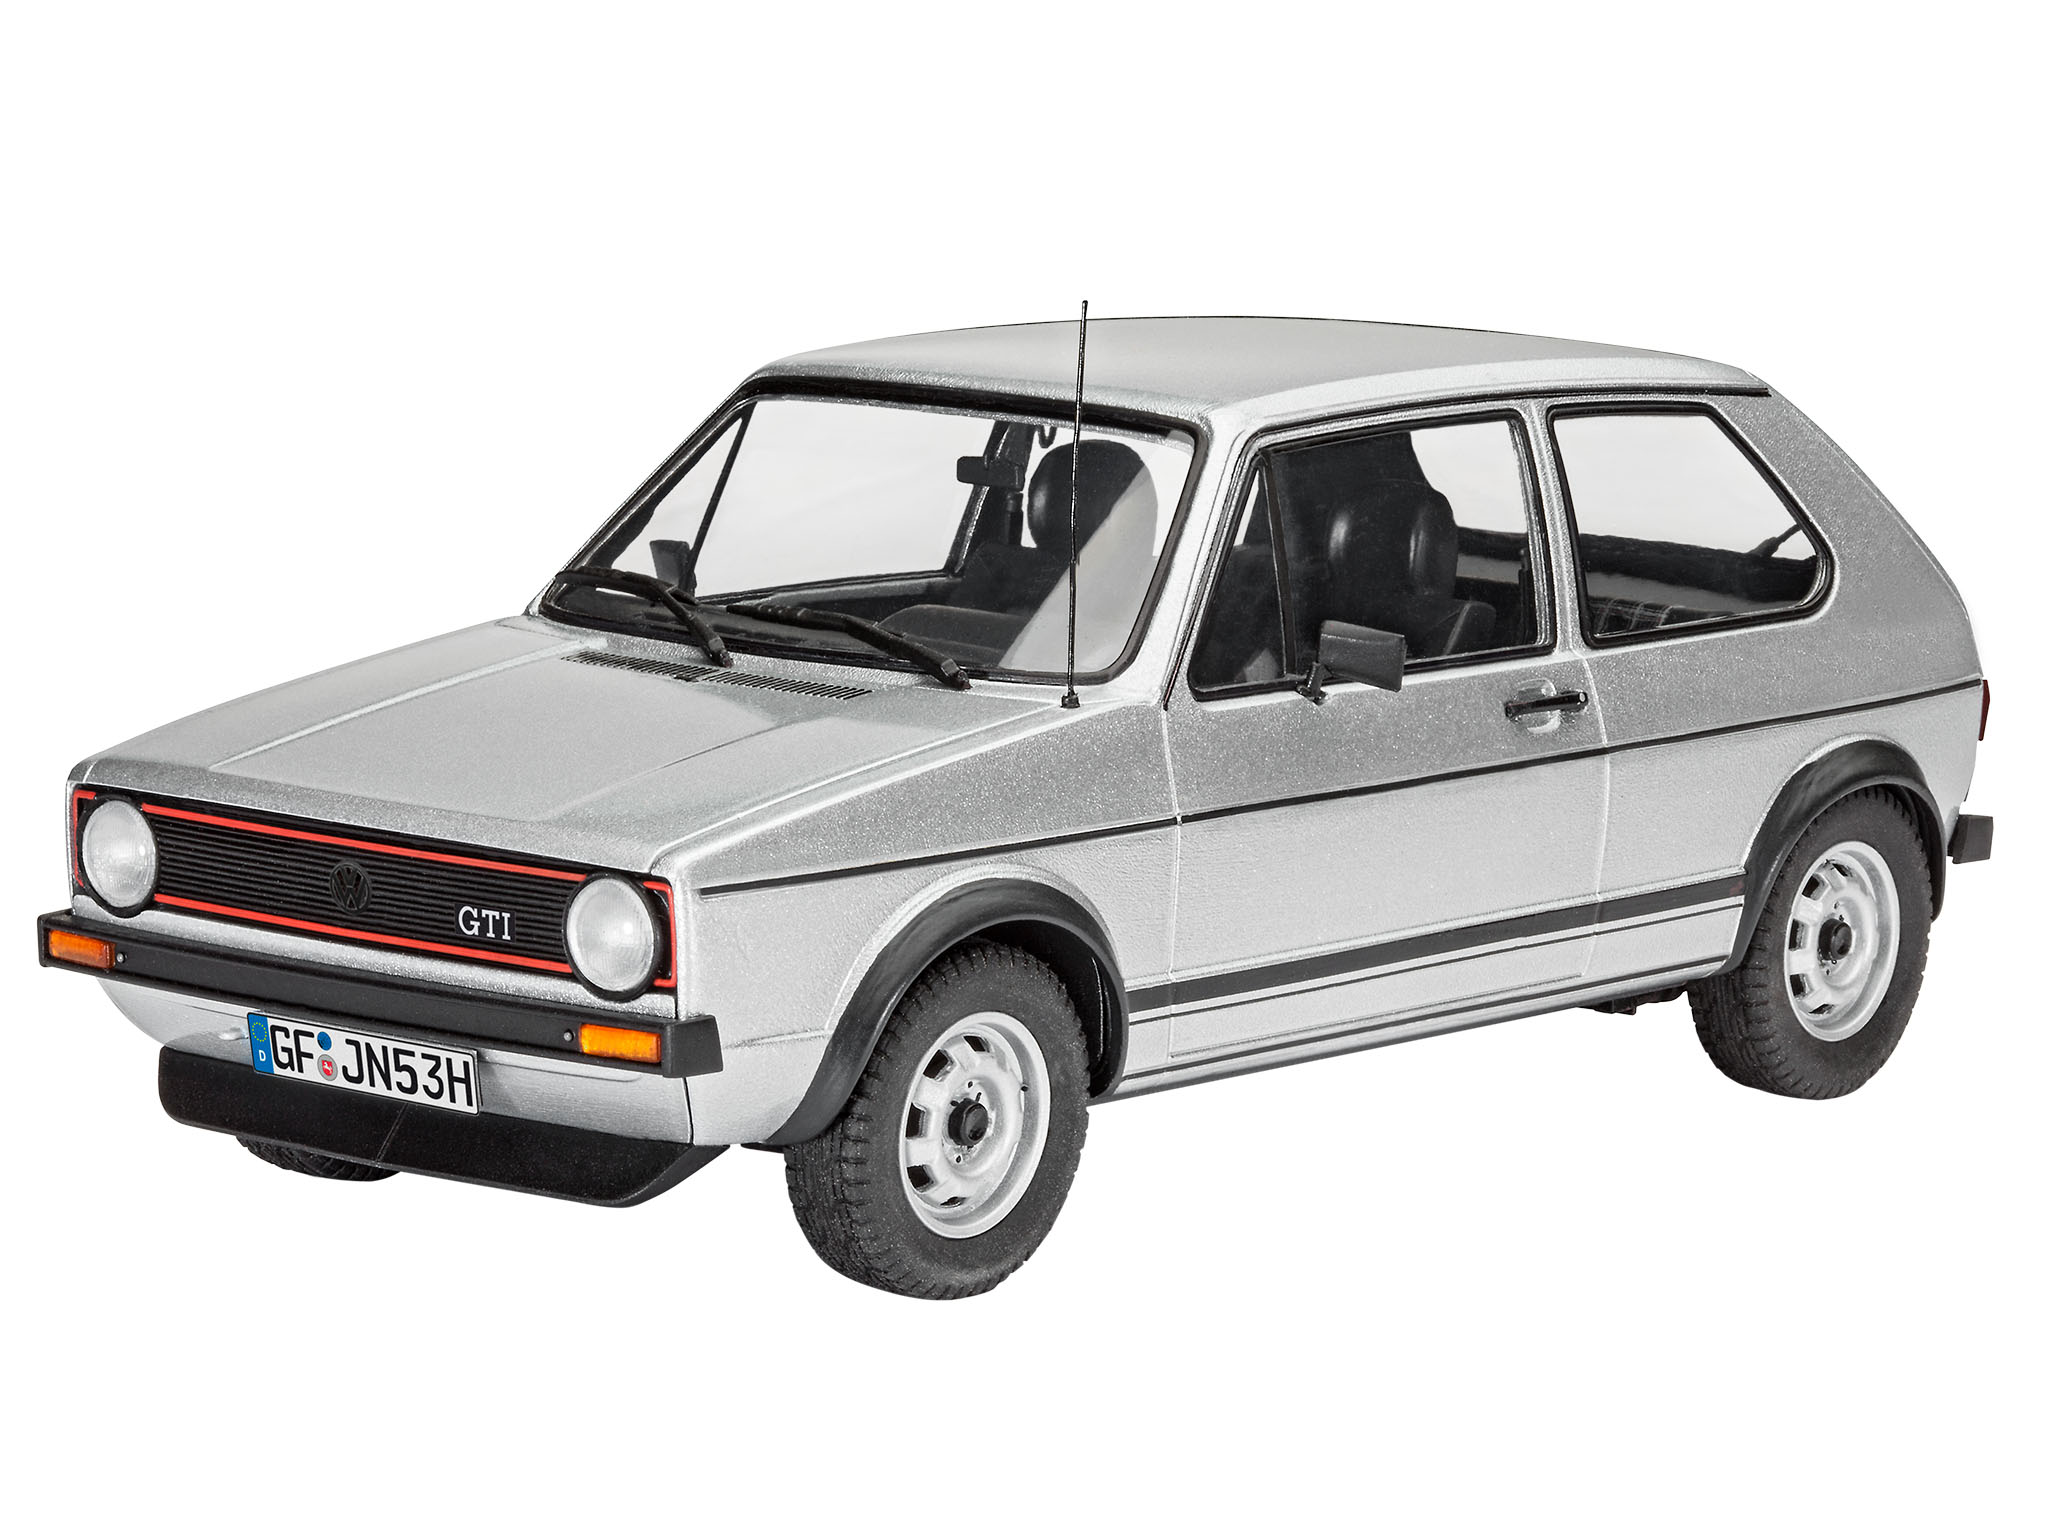 revell shop vw golf 1 gti revell shop. Black Bedroom Furniture Sets. Home Design Ideas